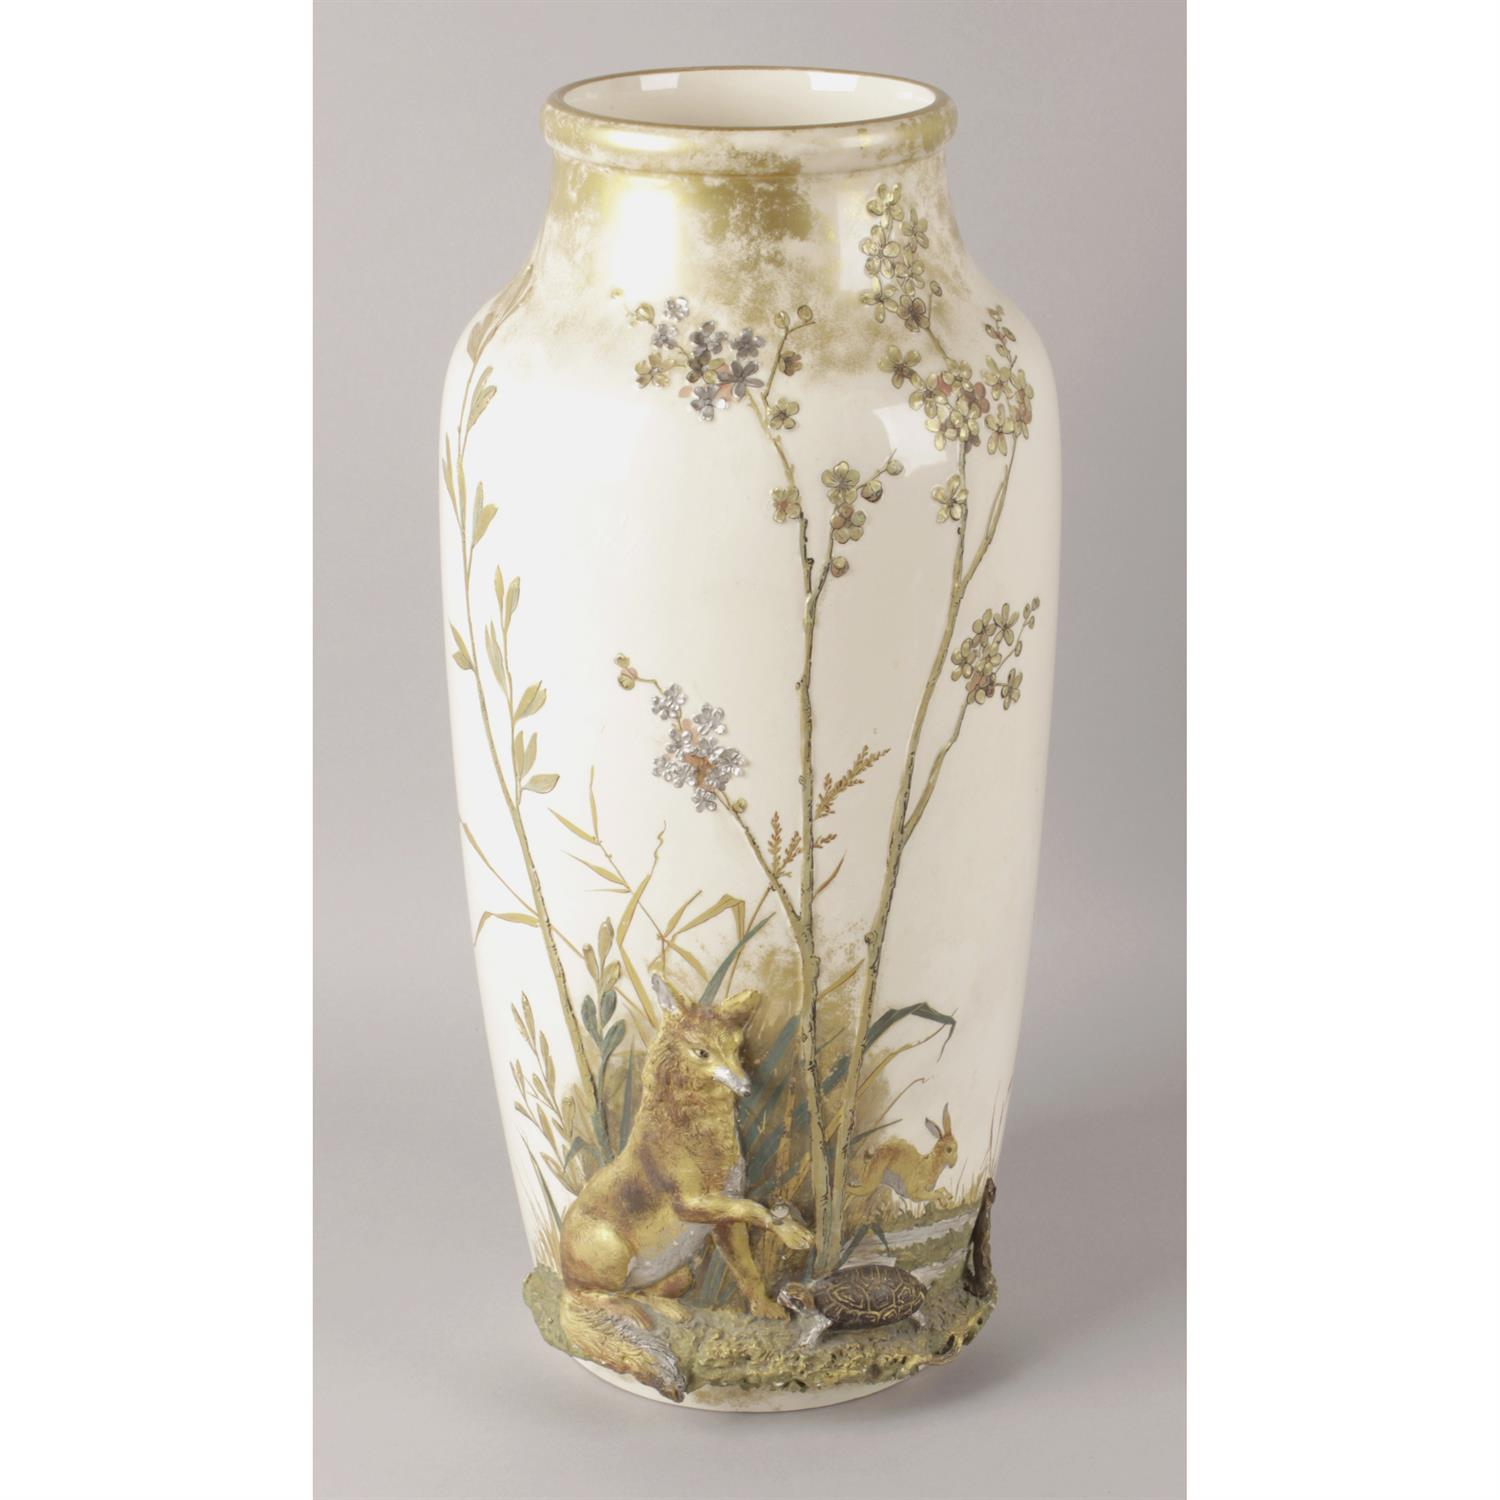 Unusual late 19th century Royal Doulton pottery vase